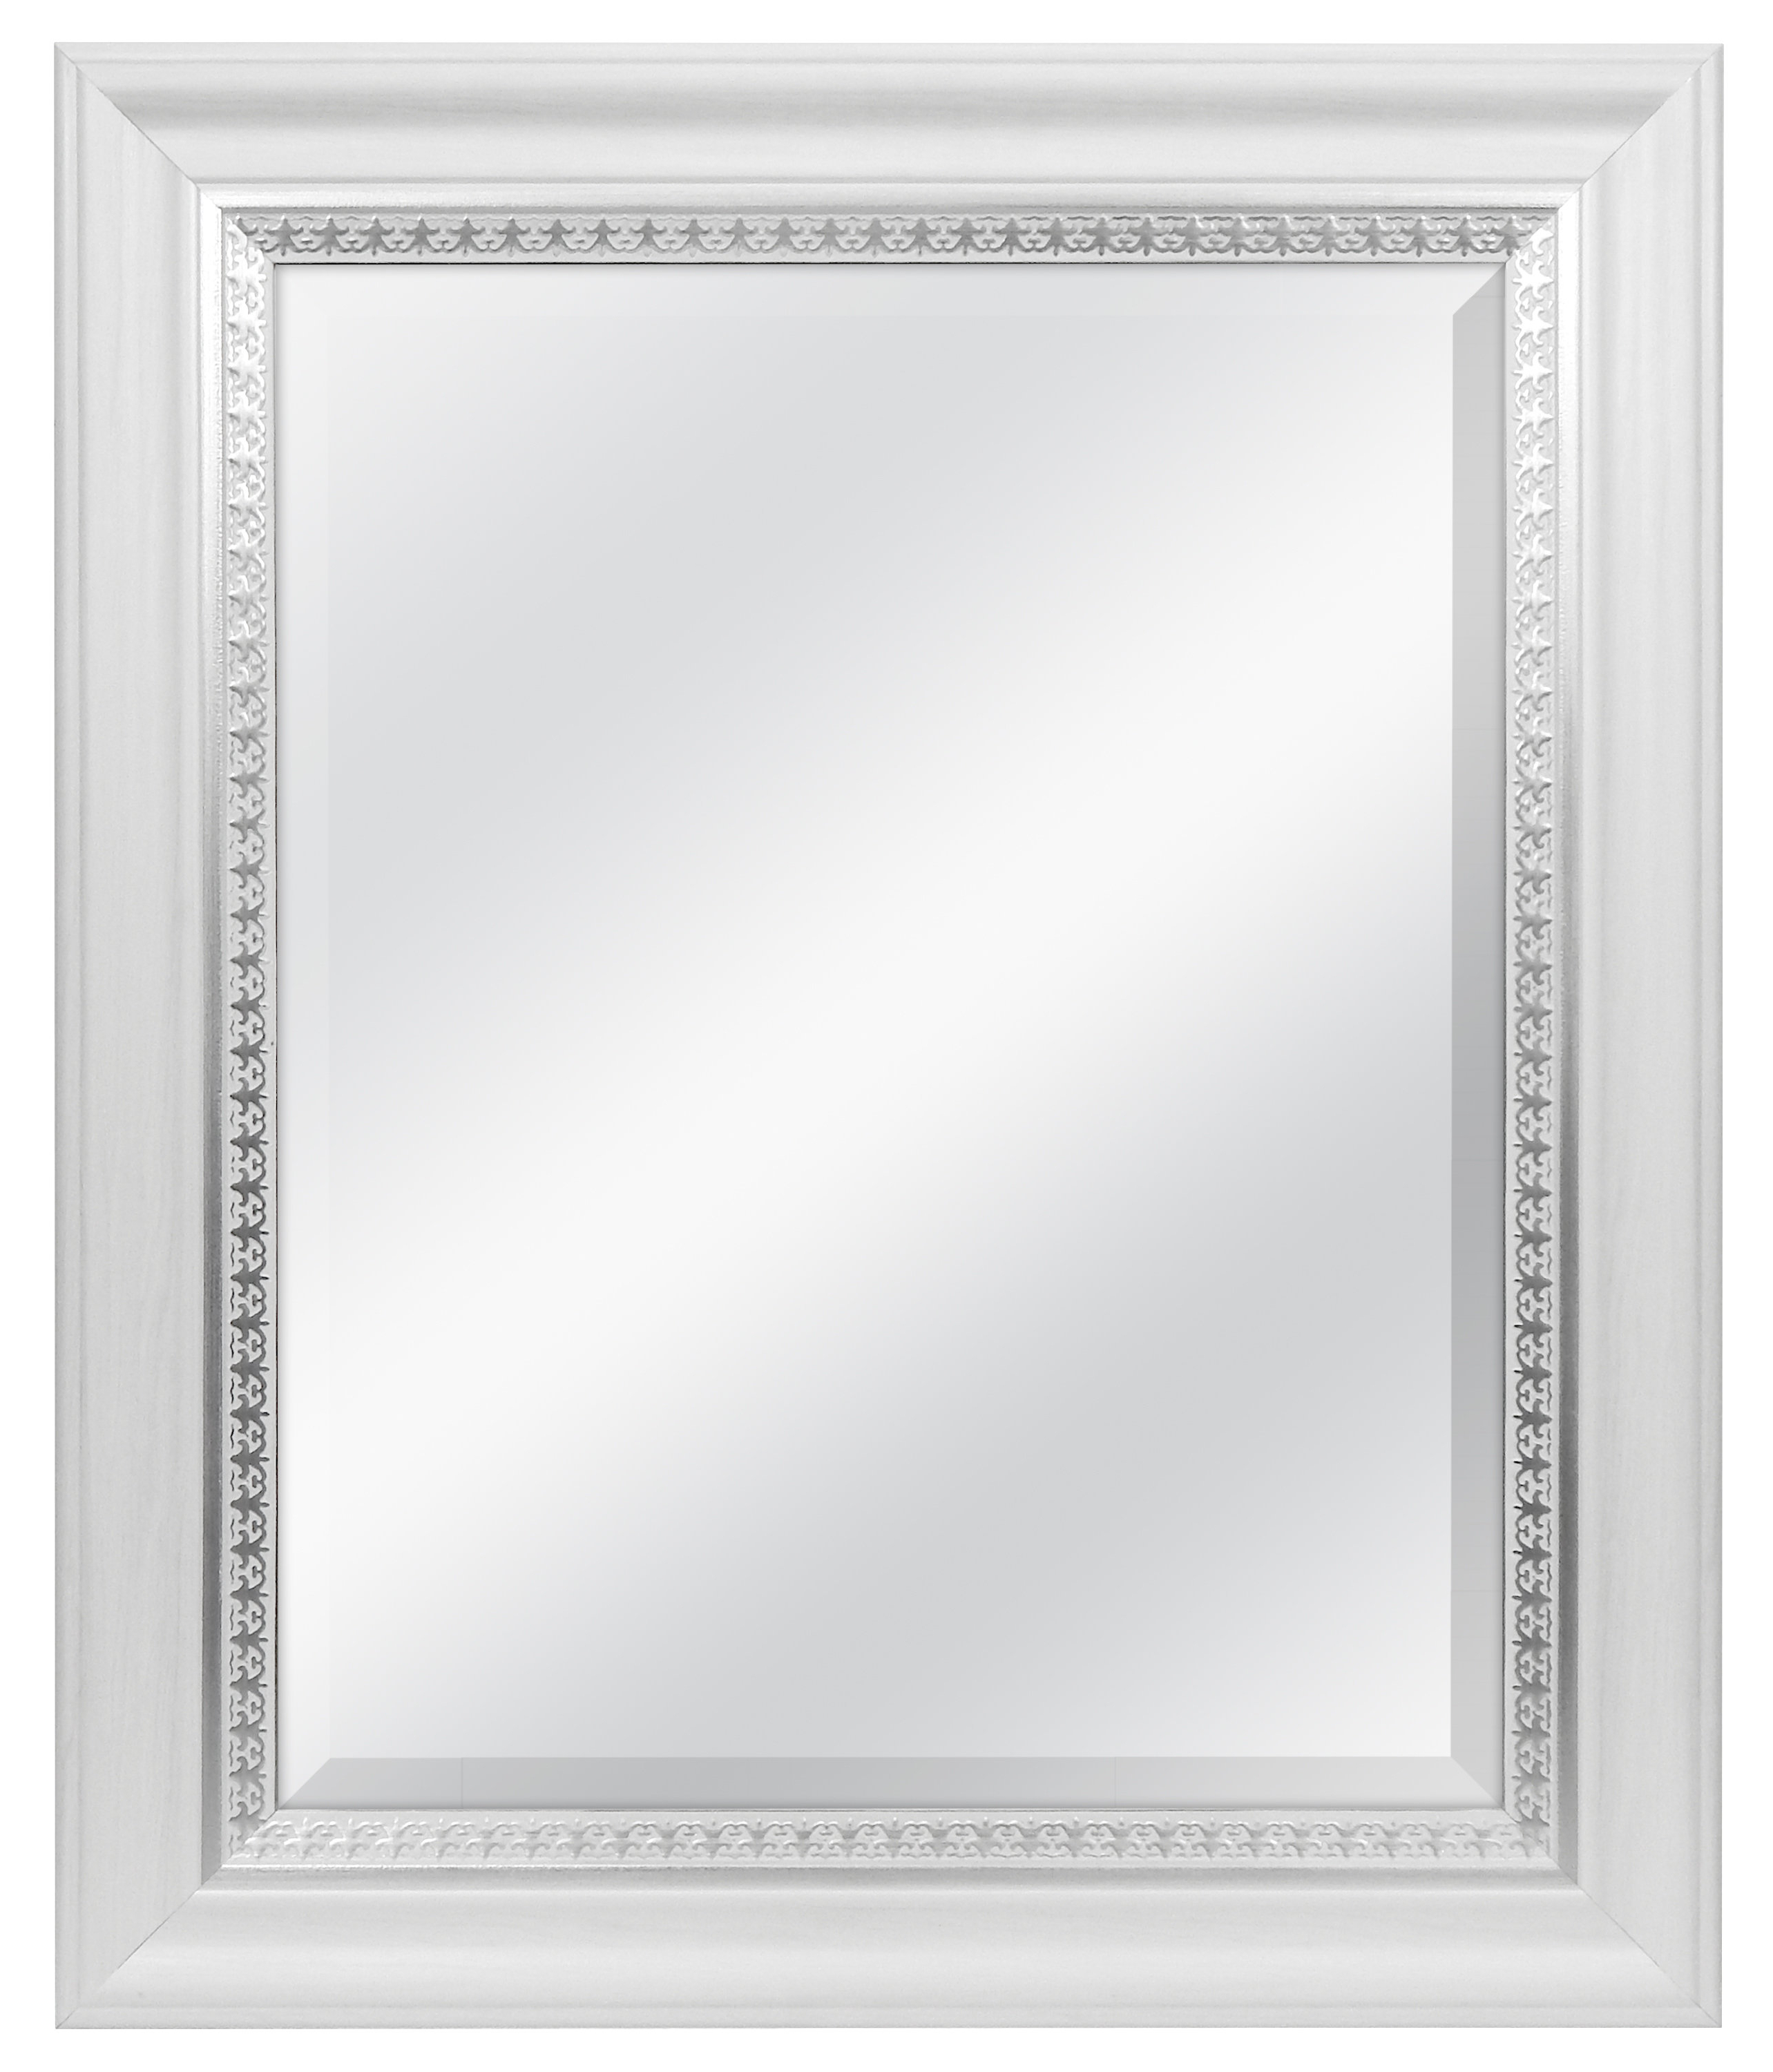 Preferred Dedrick Decorative Framed Modern And Contemporary Wall Mirrors With Regard To Farmhouse Woodgrain And Leaf Accent Wall Mirror (View 18 of 20)